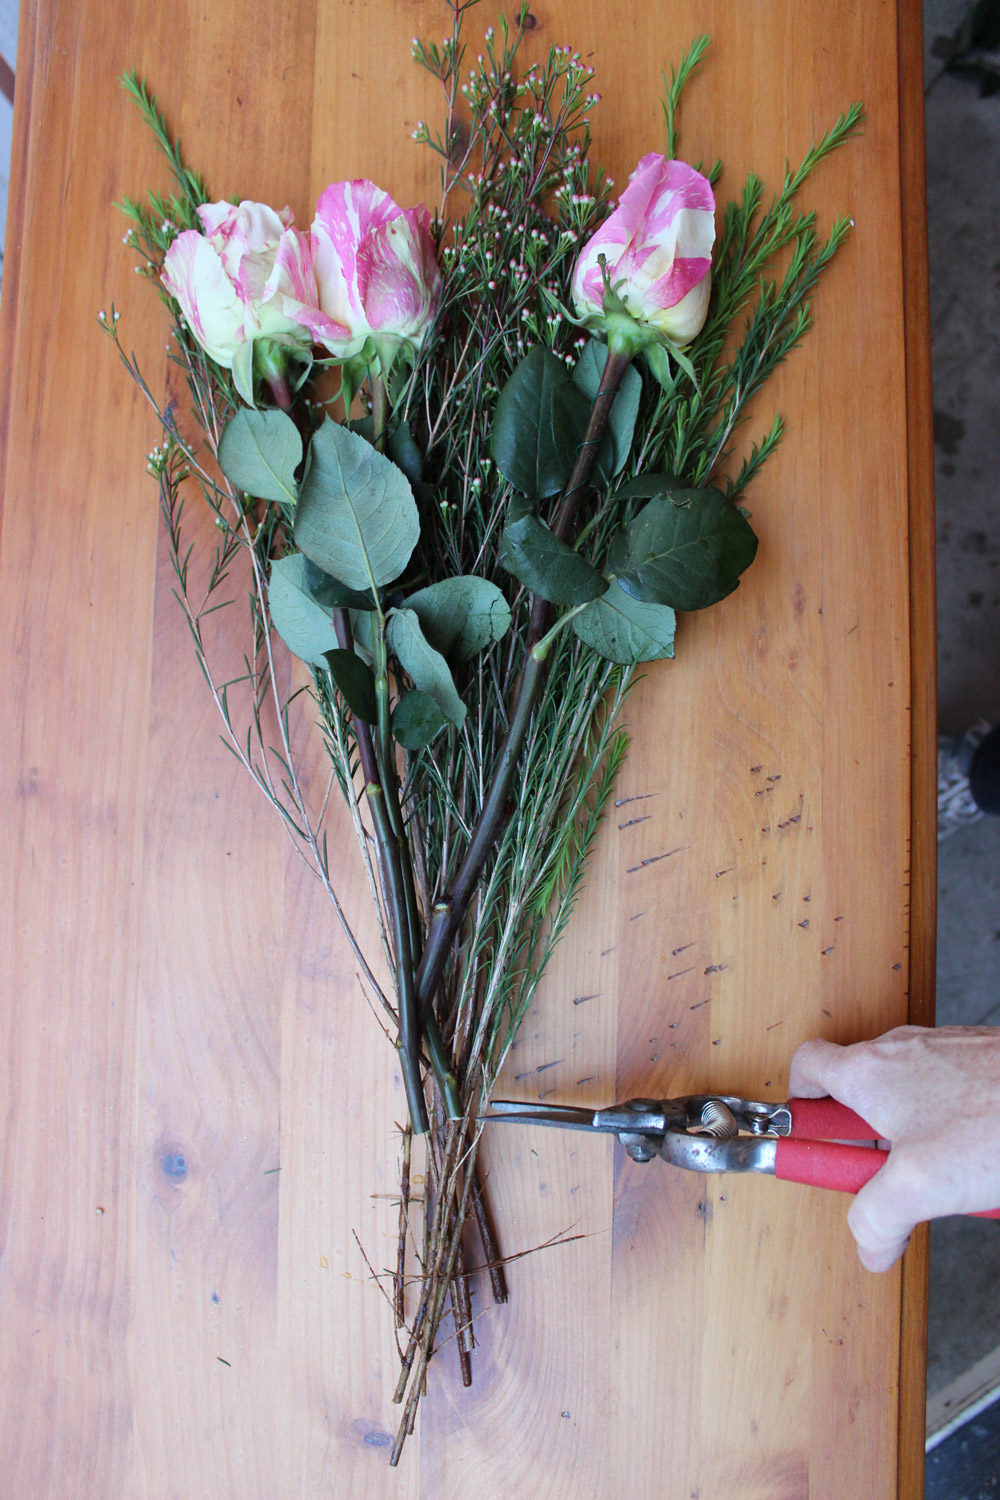 Make a grouping of 3 candy cane roses and some wax flower buds. Cut the wax flower bud stalks the same height as the roses. Place this grouping in the front of your vase.